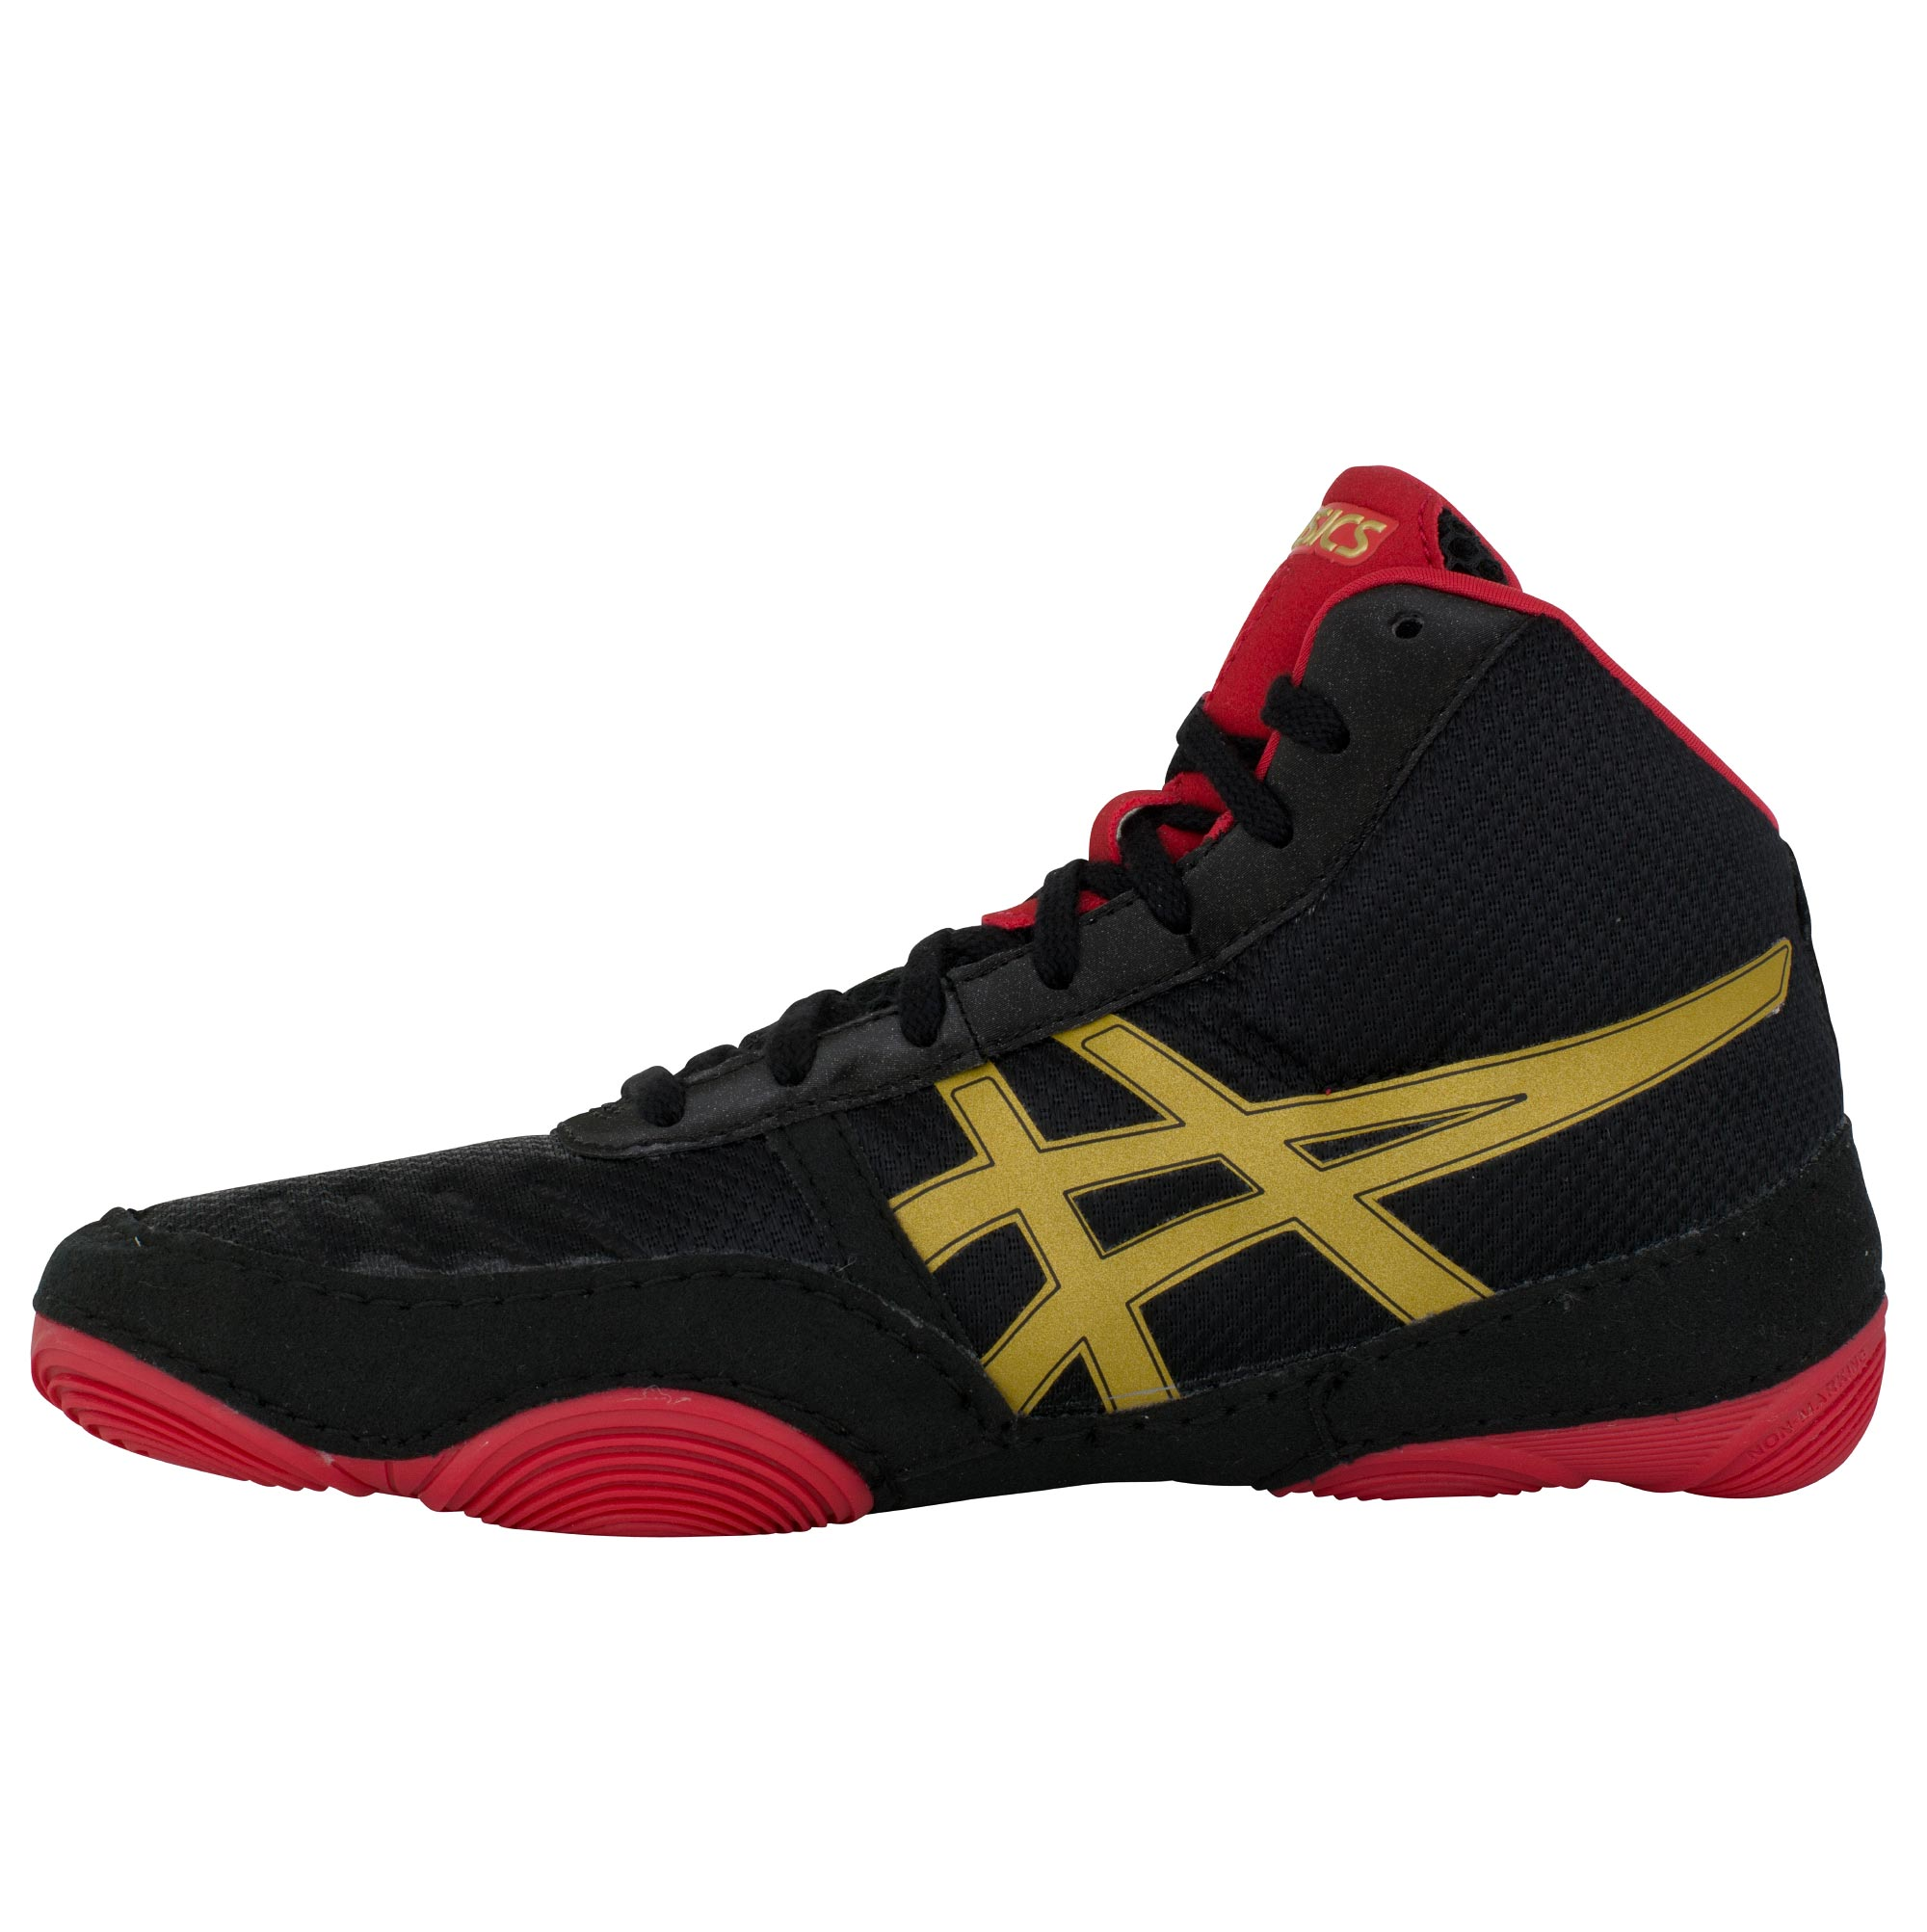 Jb Elite V2 Gs Shoes Wrestlingmart Free Shipping